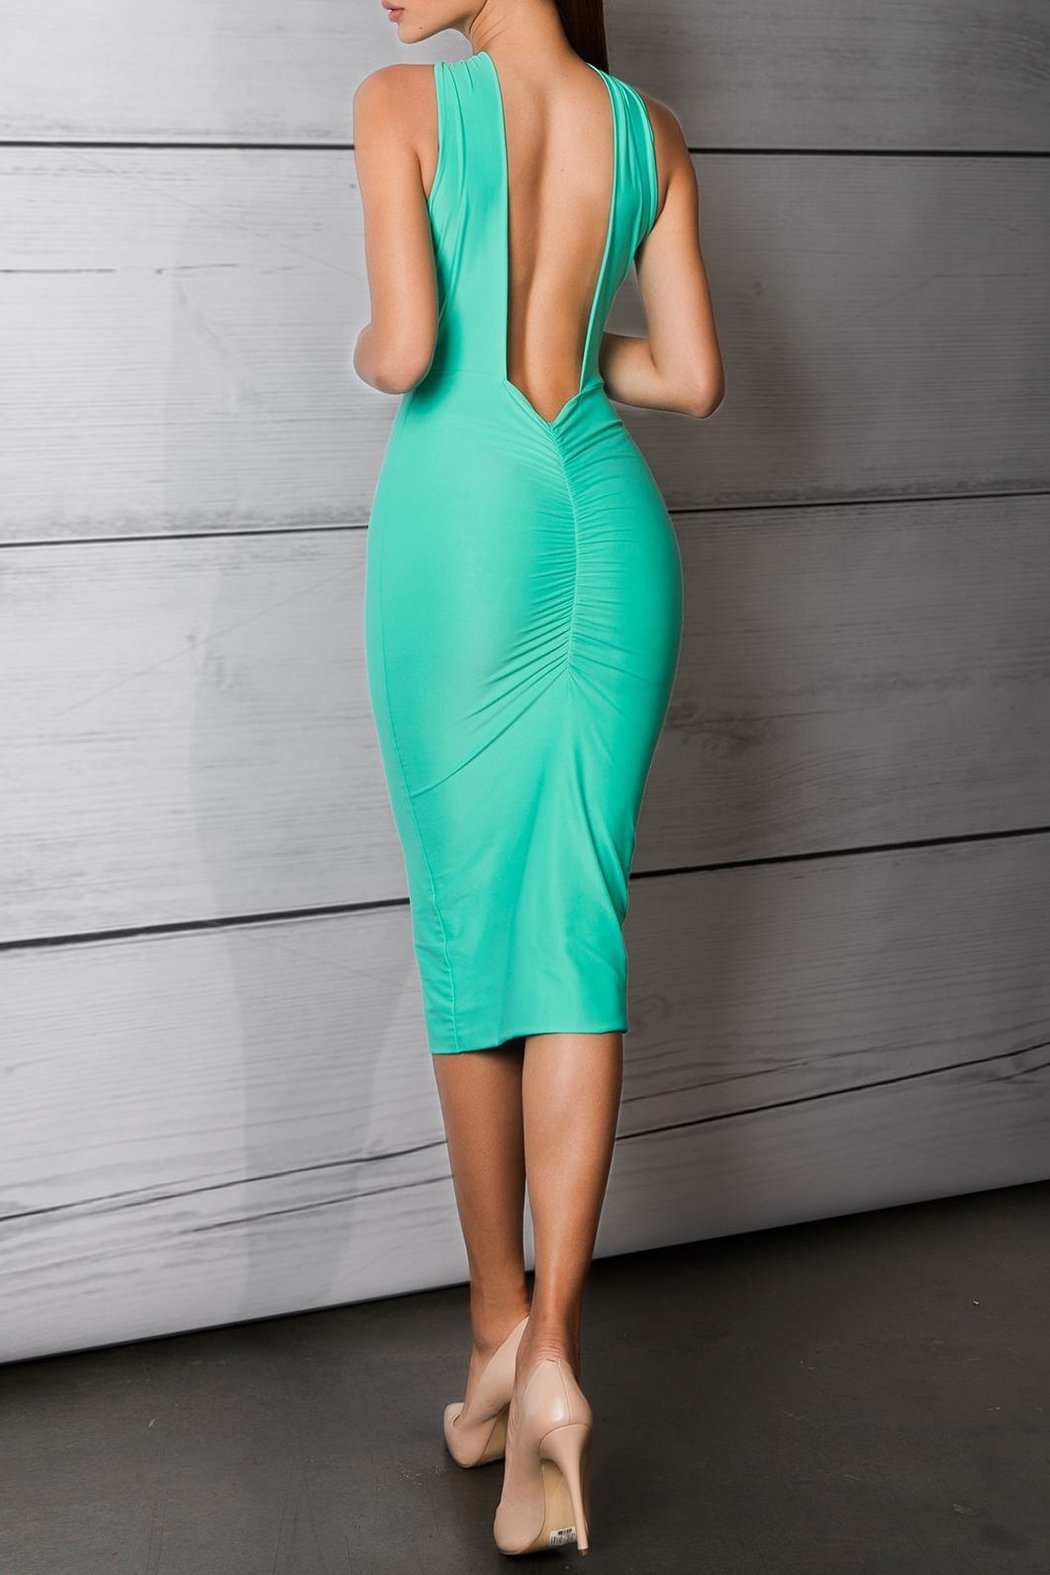 Savee Couture Green Cross Front Dress - Front Full Image